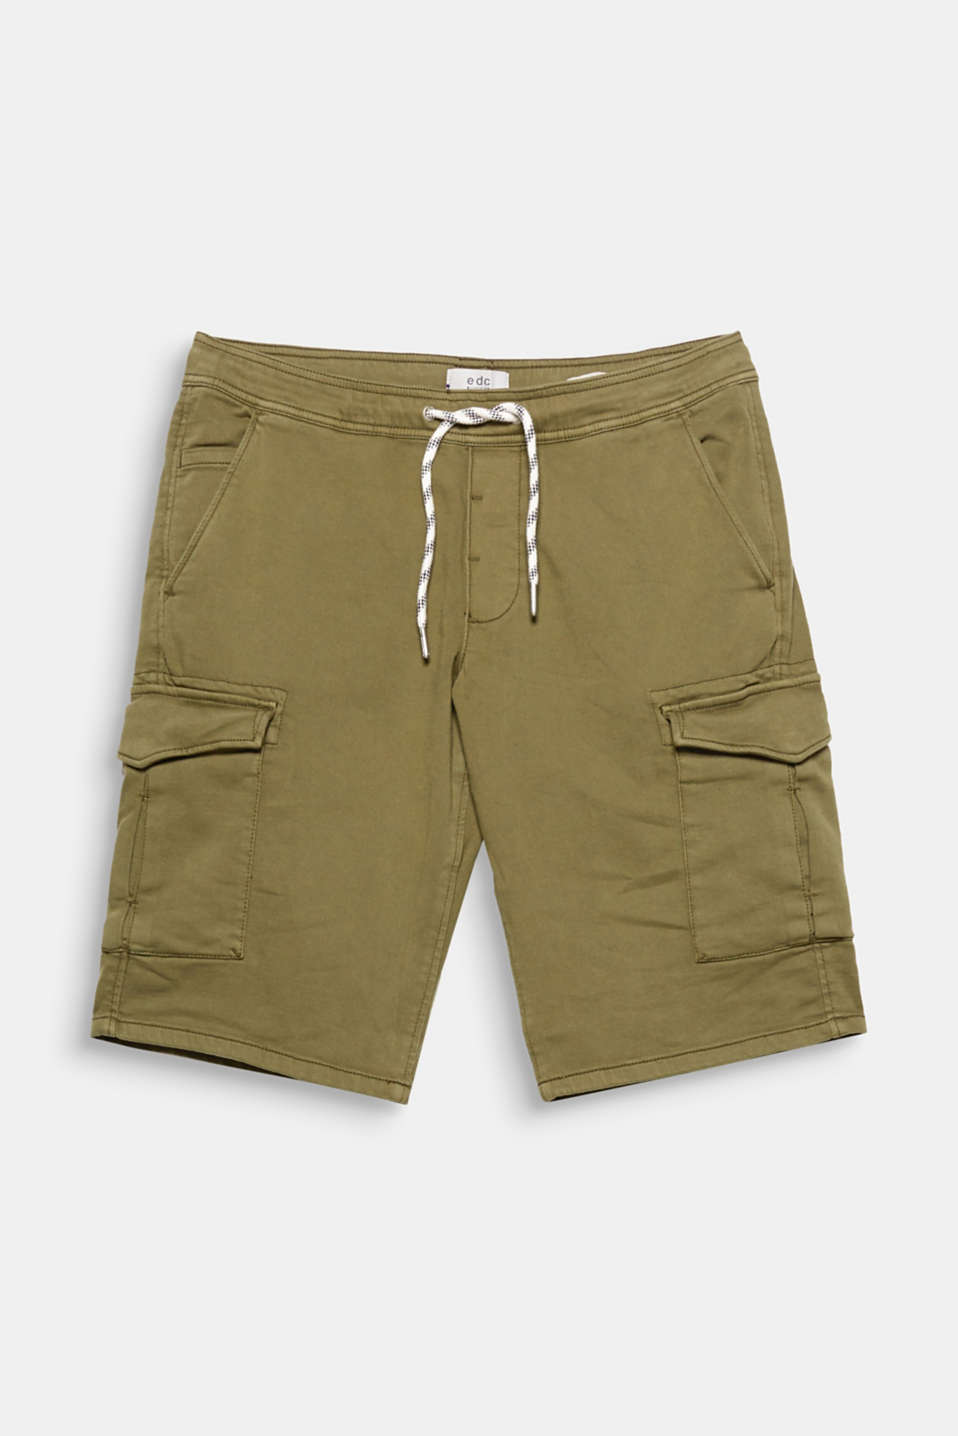 Casual summer look! These cargo shorts with a patterned drawcord are extremely eye-catching.